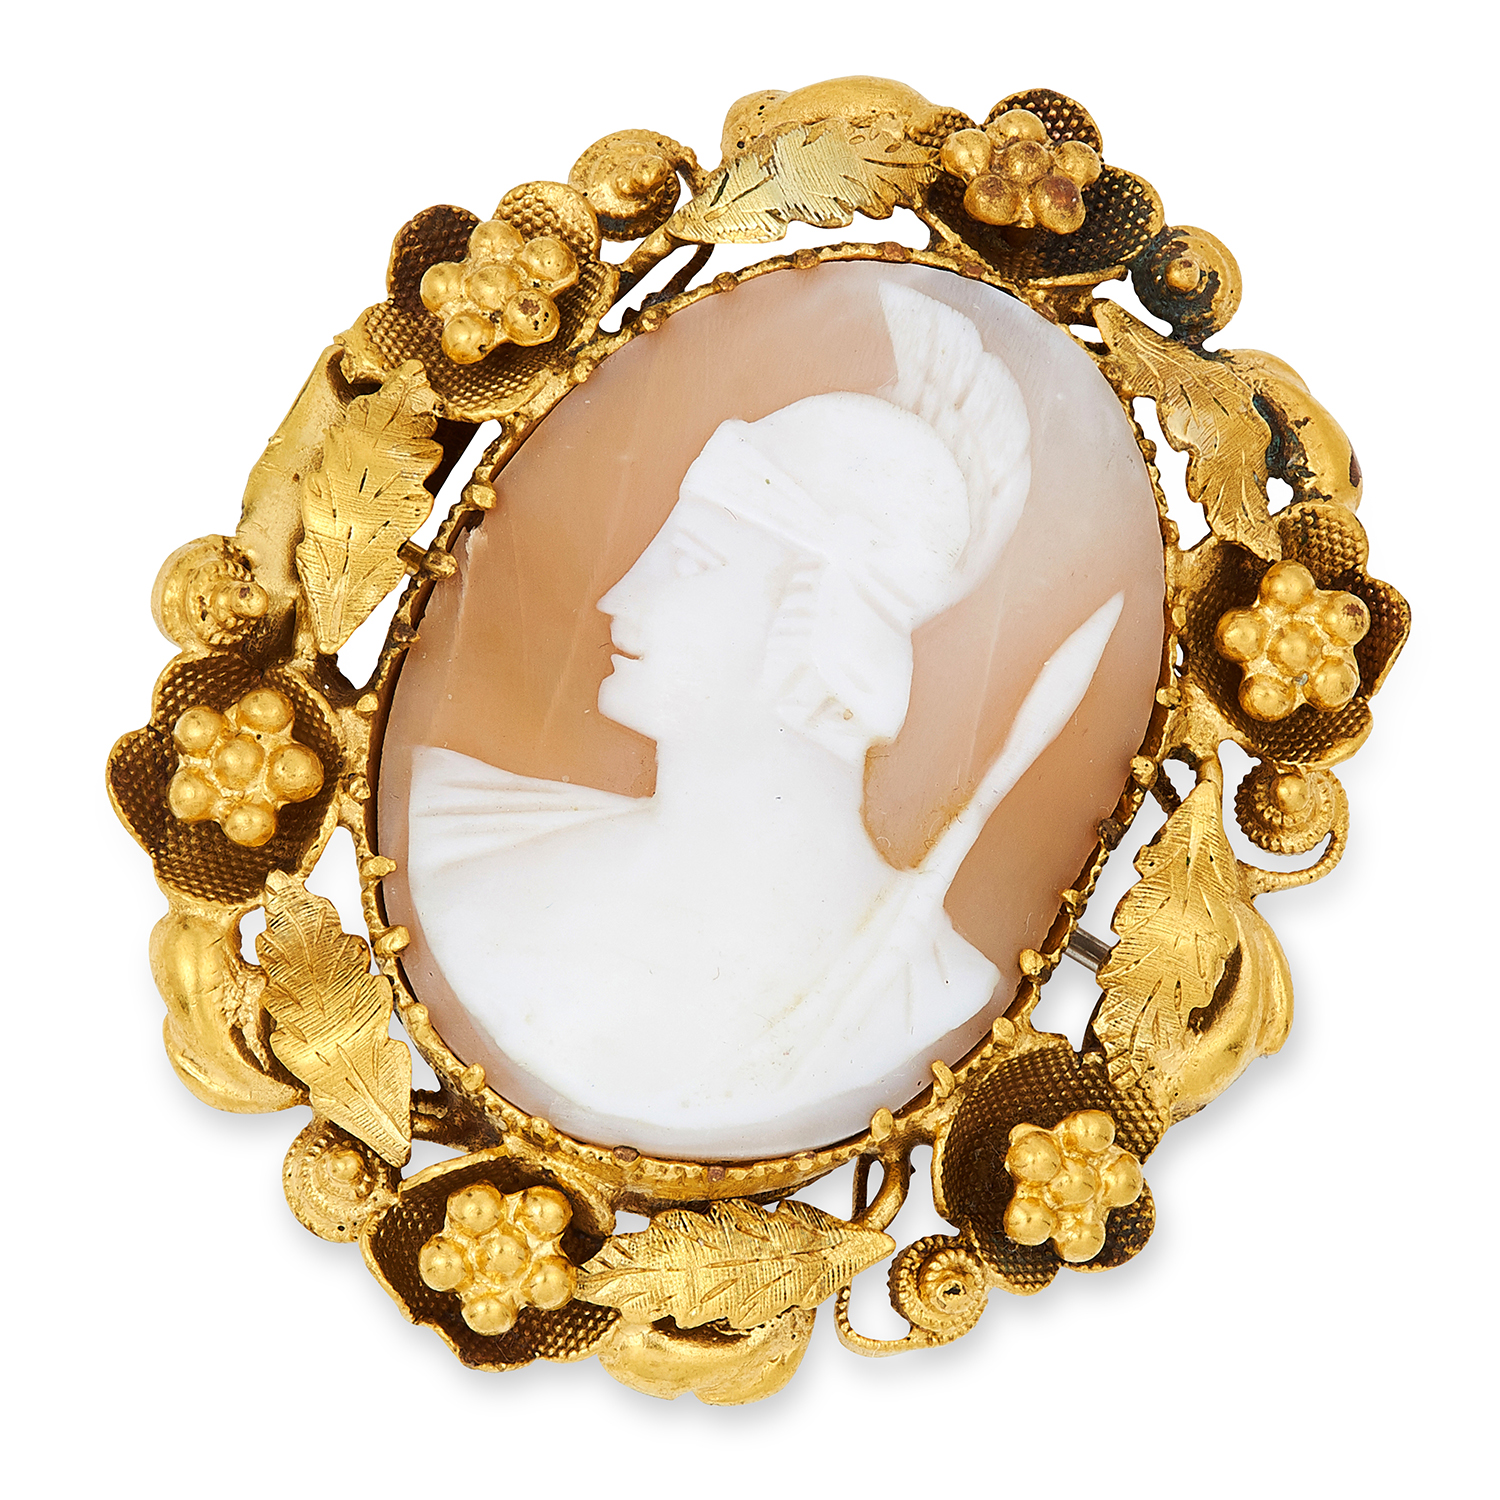 Los 30 - ANTIQUE CARVED CAMEO BROOCH depicting a Roman soldier, 4.1cm, 9.5g.